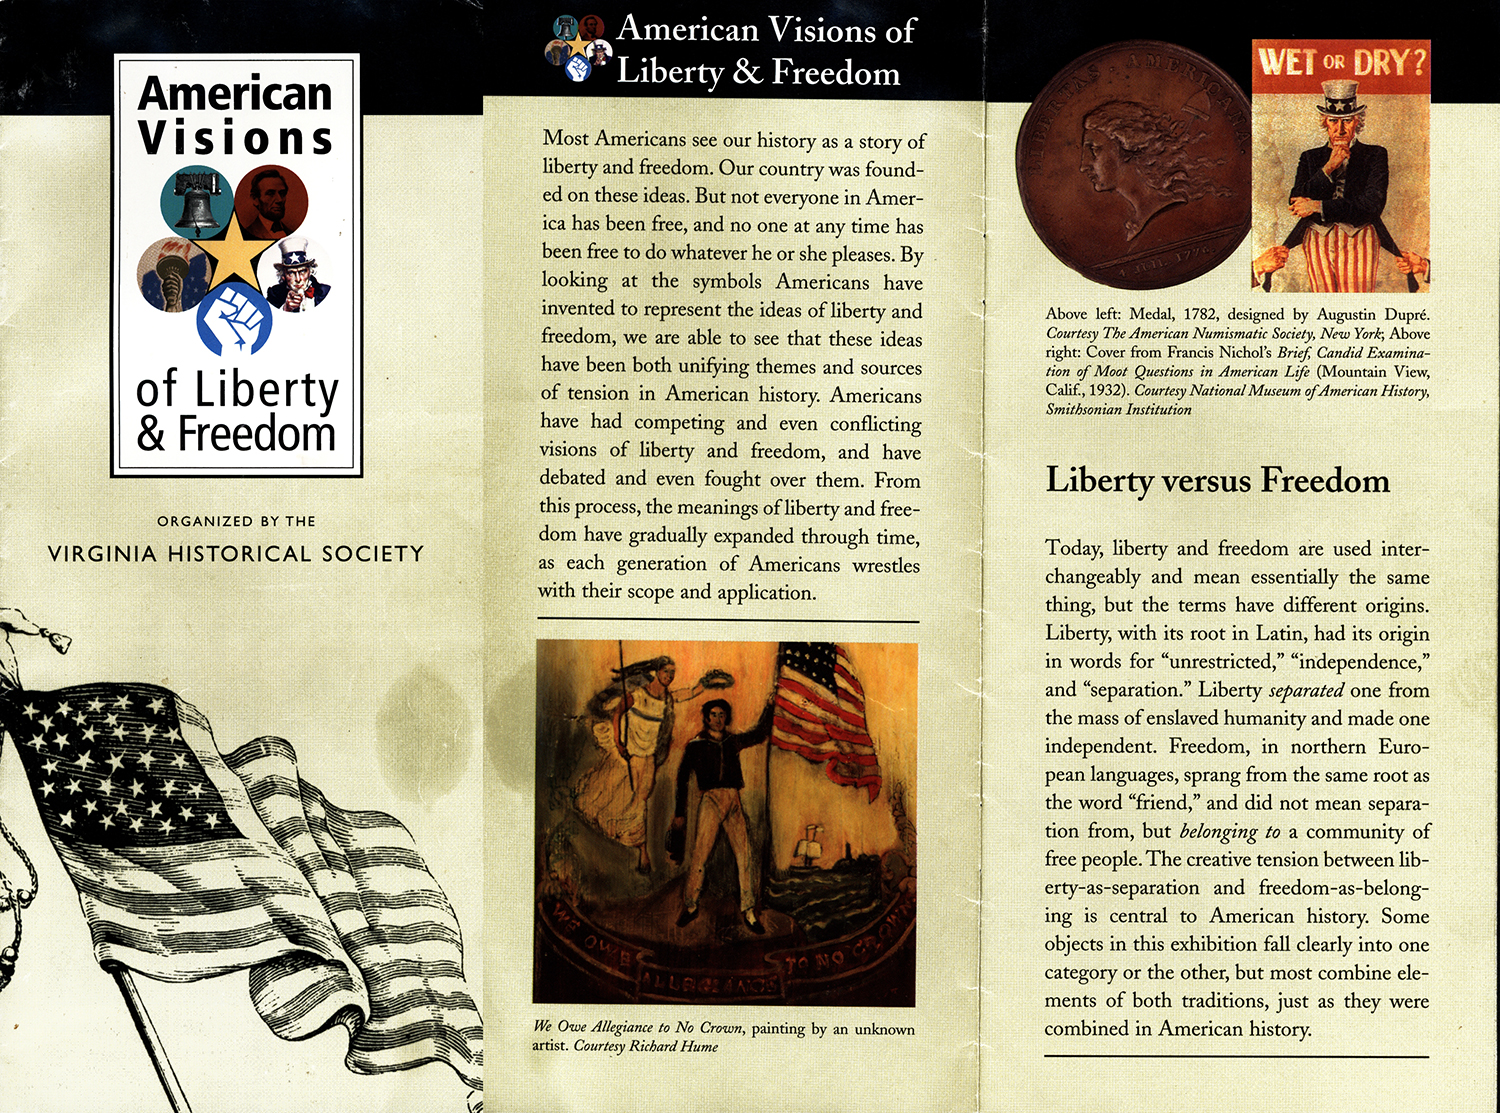 19th Century Allegorical Painting, WE OWE ALLEGIANCE TO NO CROWN Ms. Liberty & War of 1812 Sailor, Popular Symbol of American Pride Anonymous, after John Archibald Woodside, We Owe Allegiance to No Crown, brochure